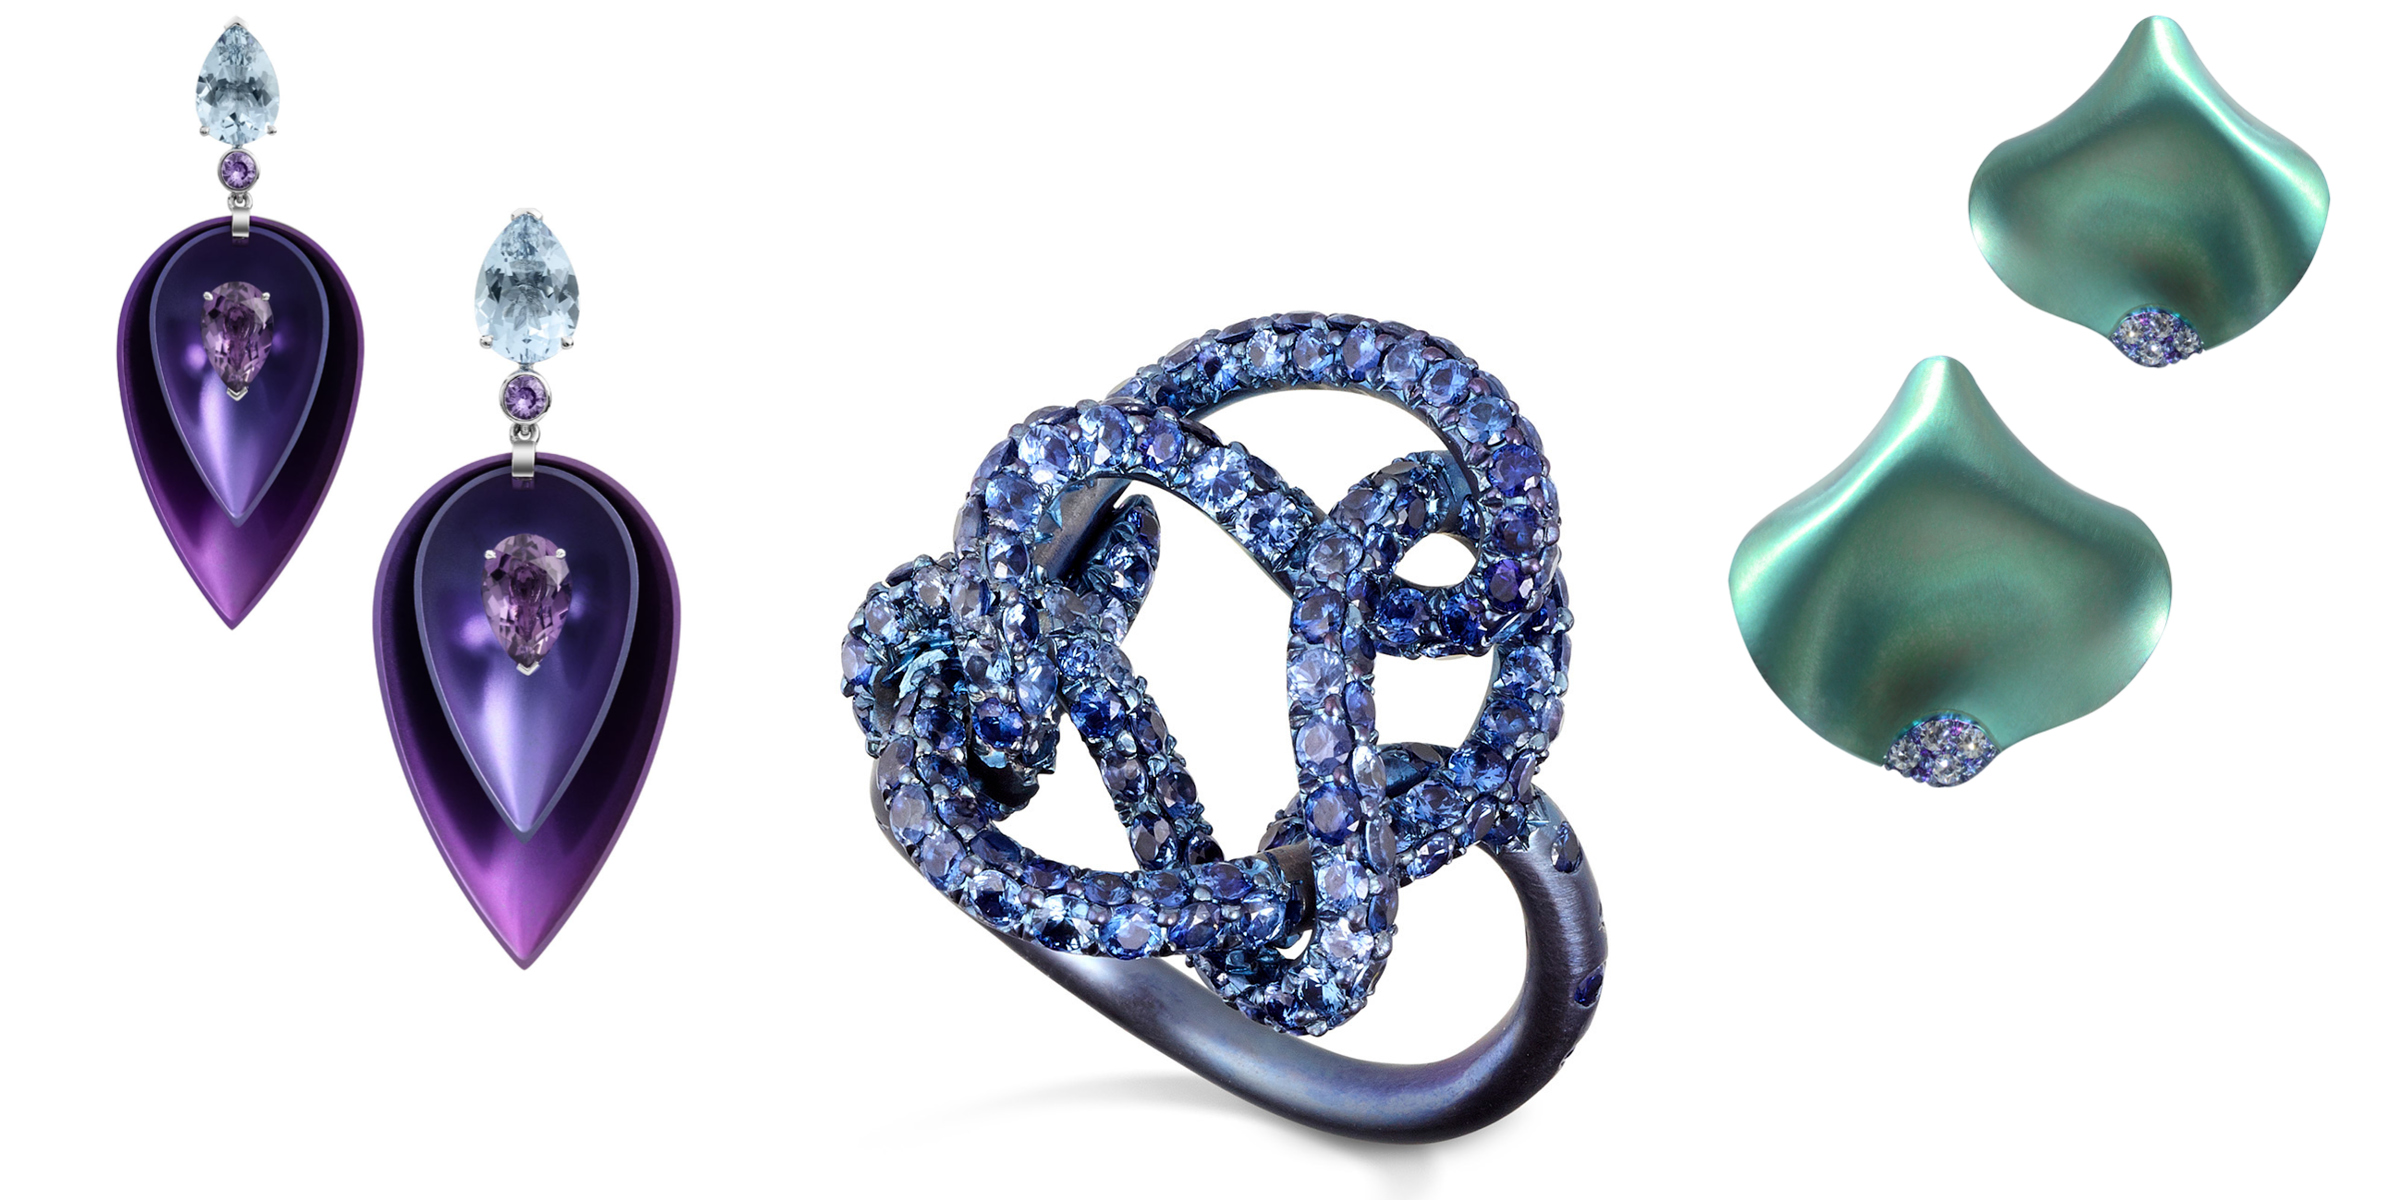 Meet the Motley Metals - Colored titanium jewelry